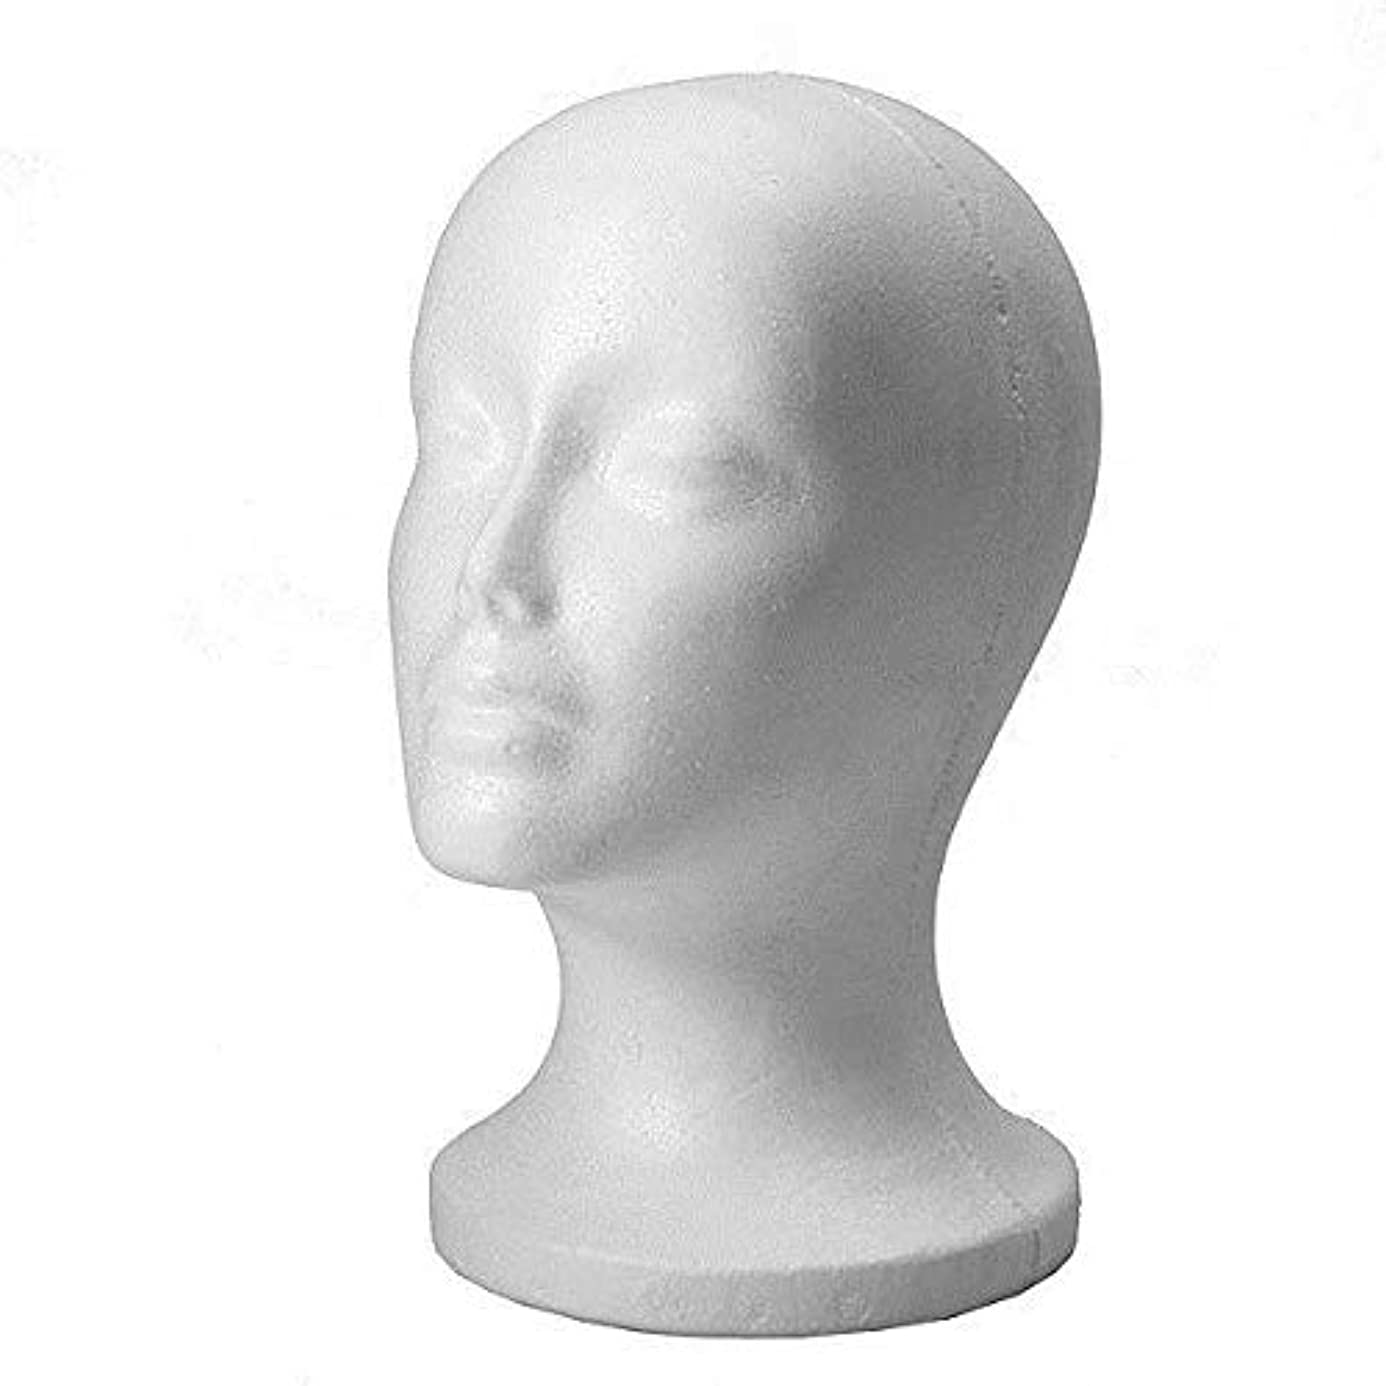 Curly Hair Product - Female Foam Mannequin Head Model Hat Wig Display Stand Rack White - Display Sale Stand Product Black Brown Female Blue White Mannequin Short Tail Type Cosplay Foam Pink B